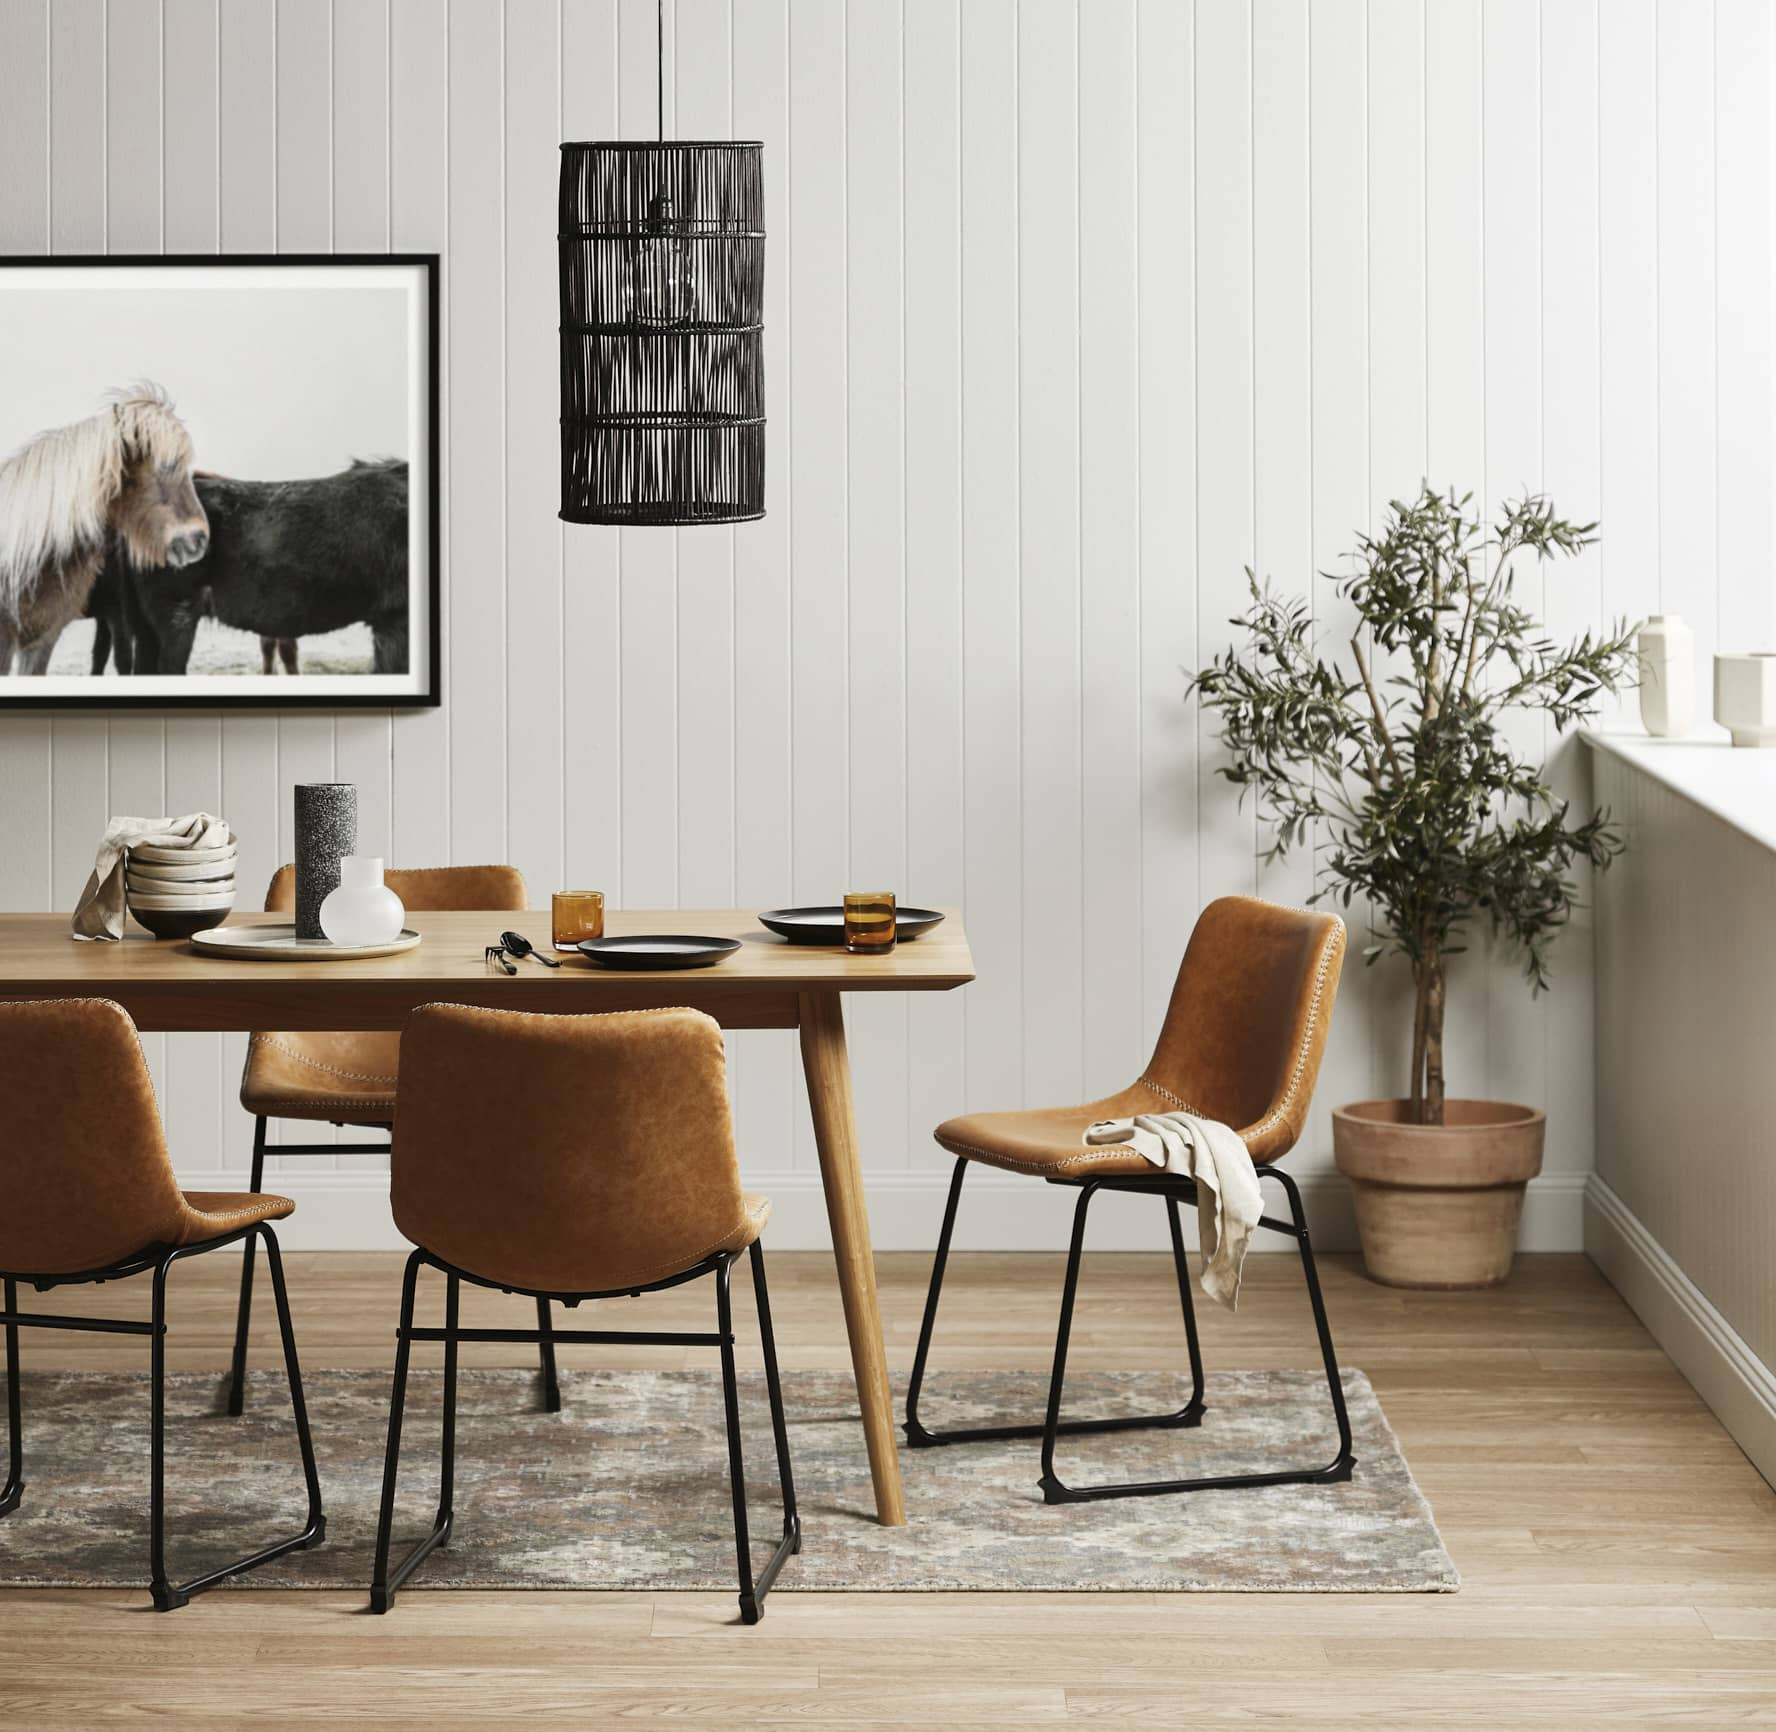 temple and webster tan leather dining chairs in global dining room